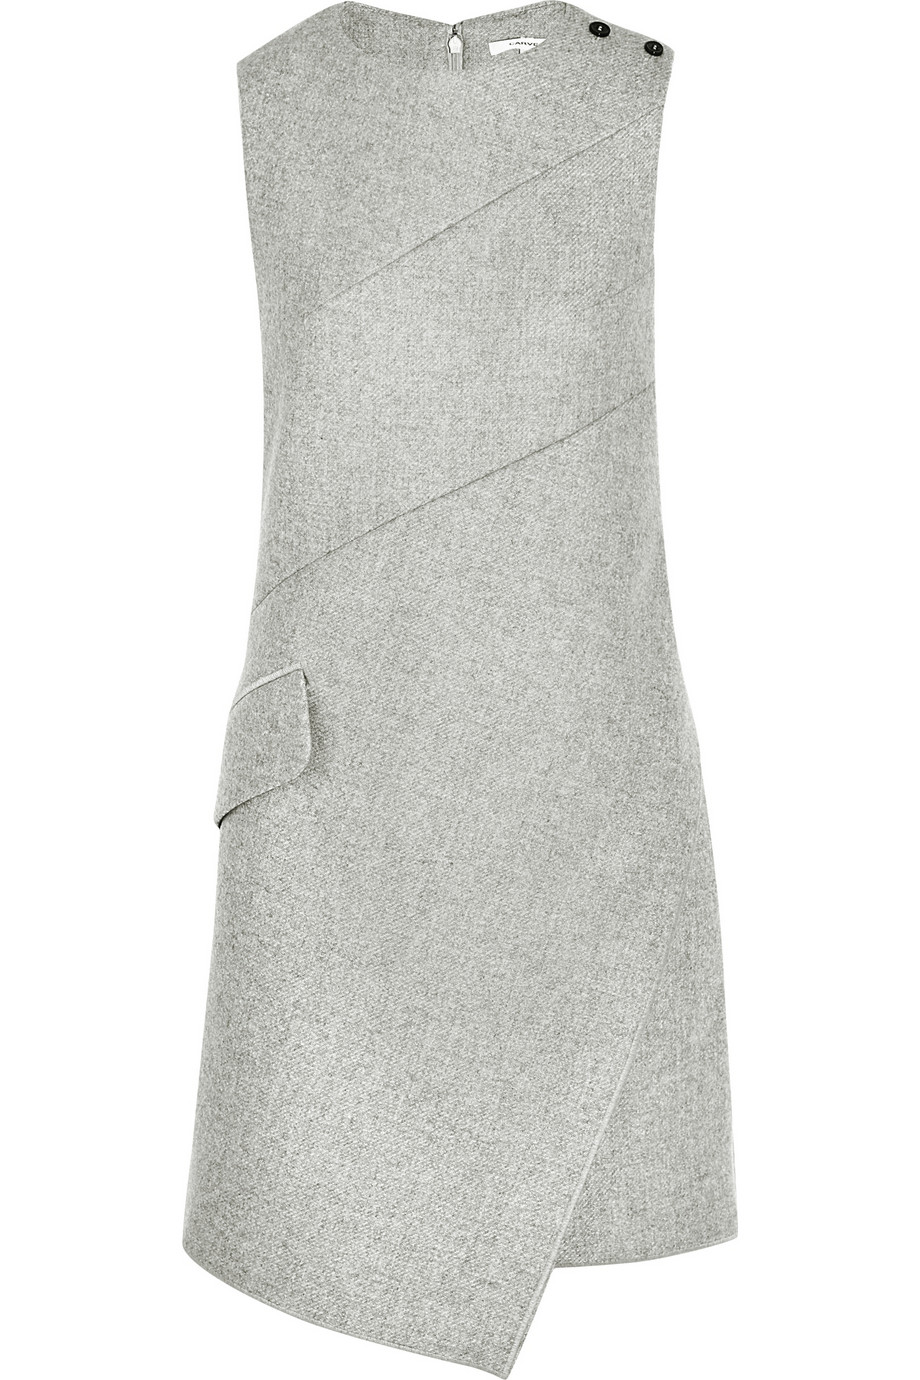 A Perfect Gray Dress